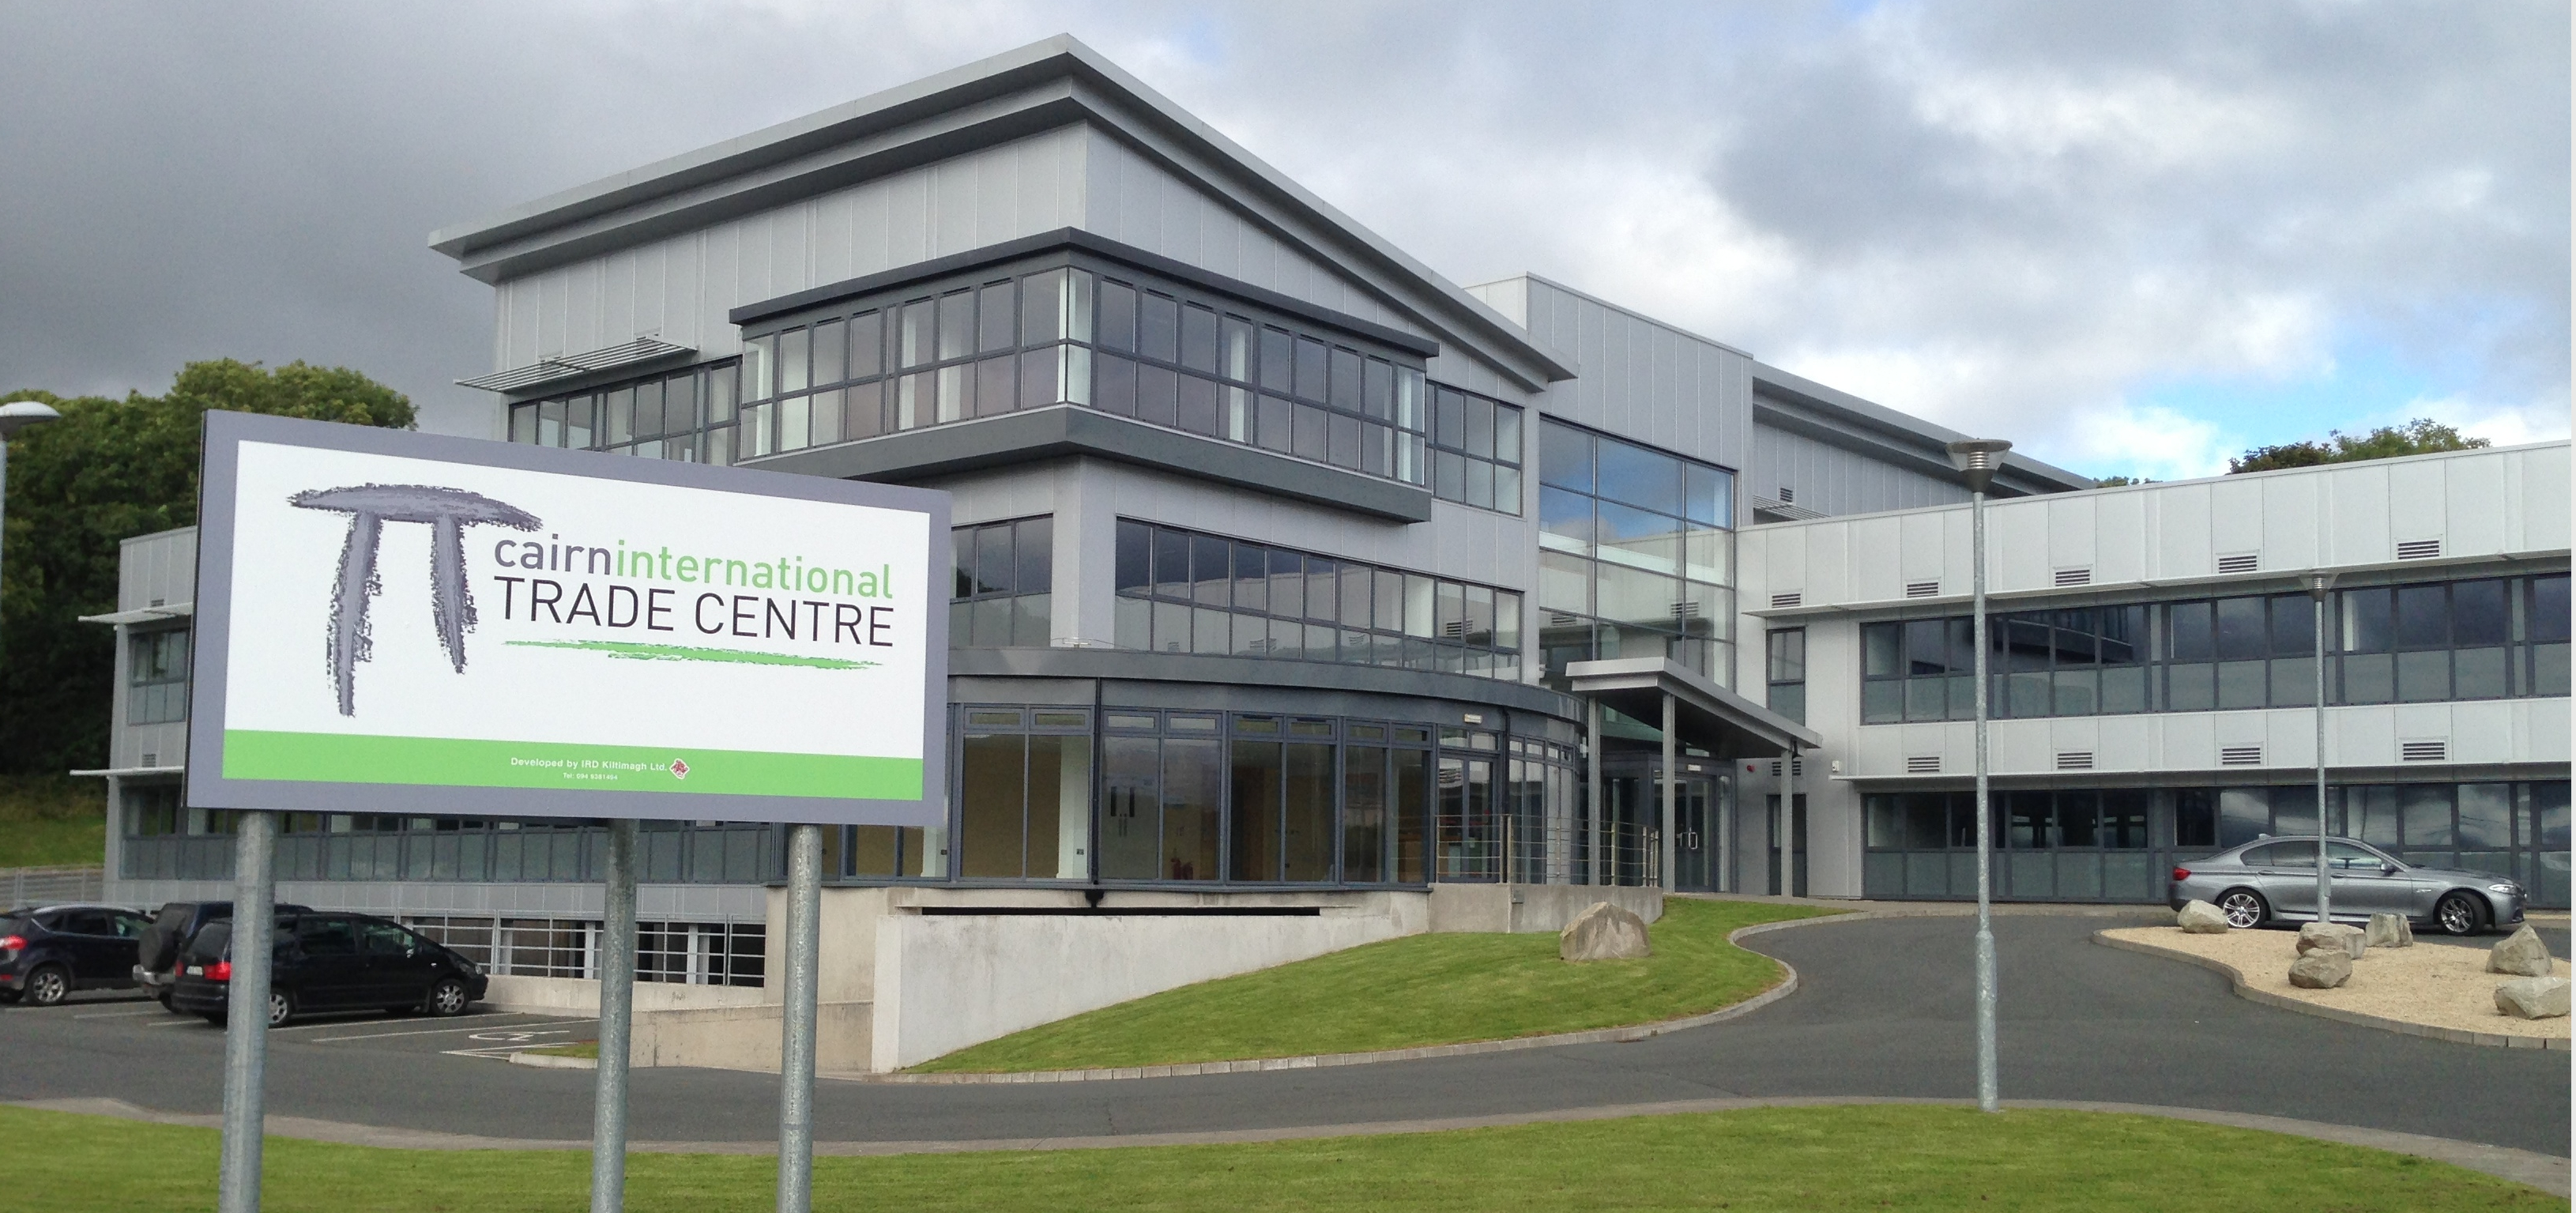 Cairns International Trade Centre, Kiltimagh, Co. Mayo